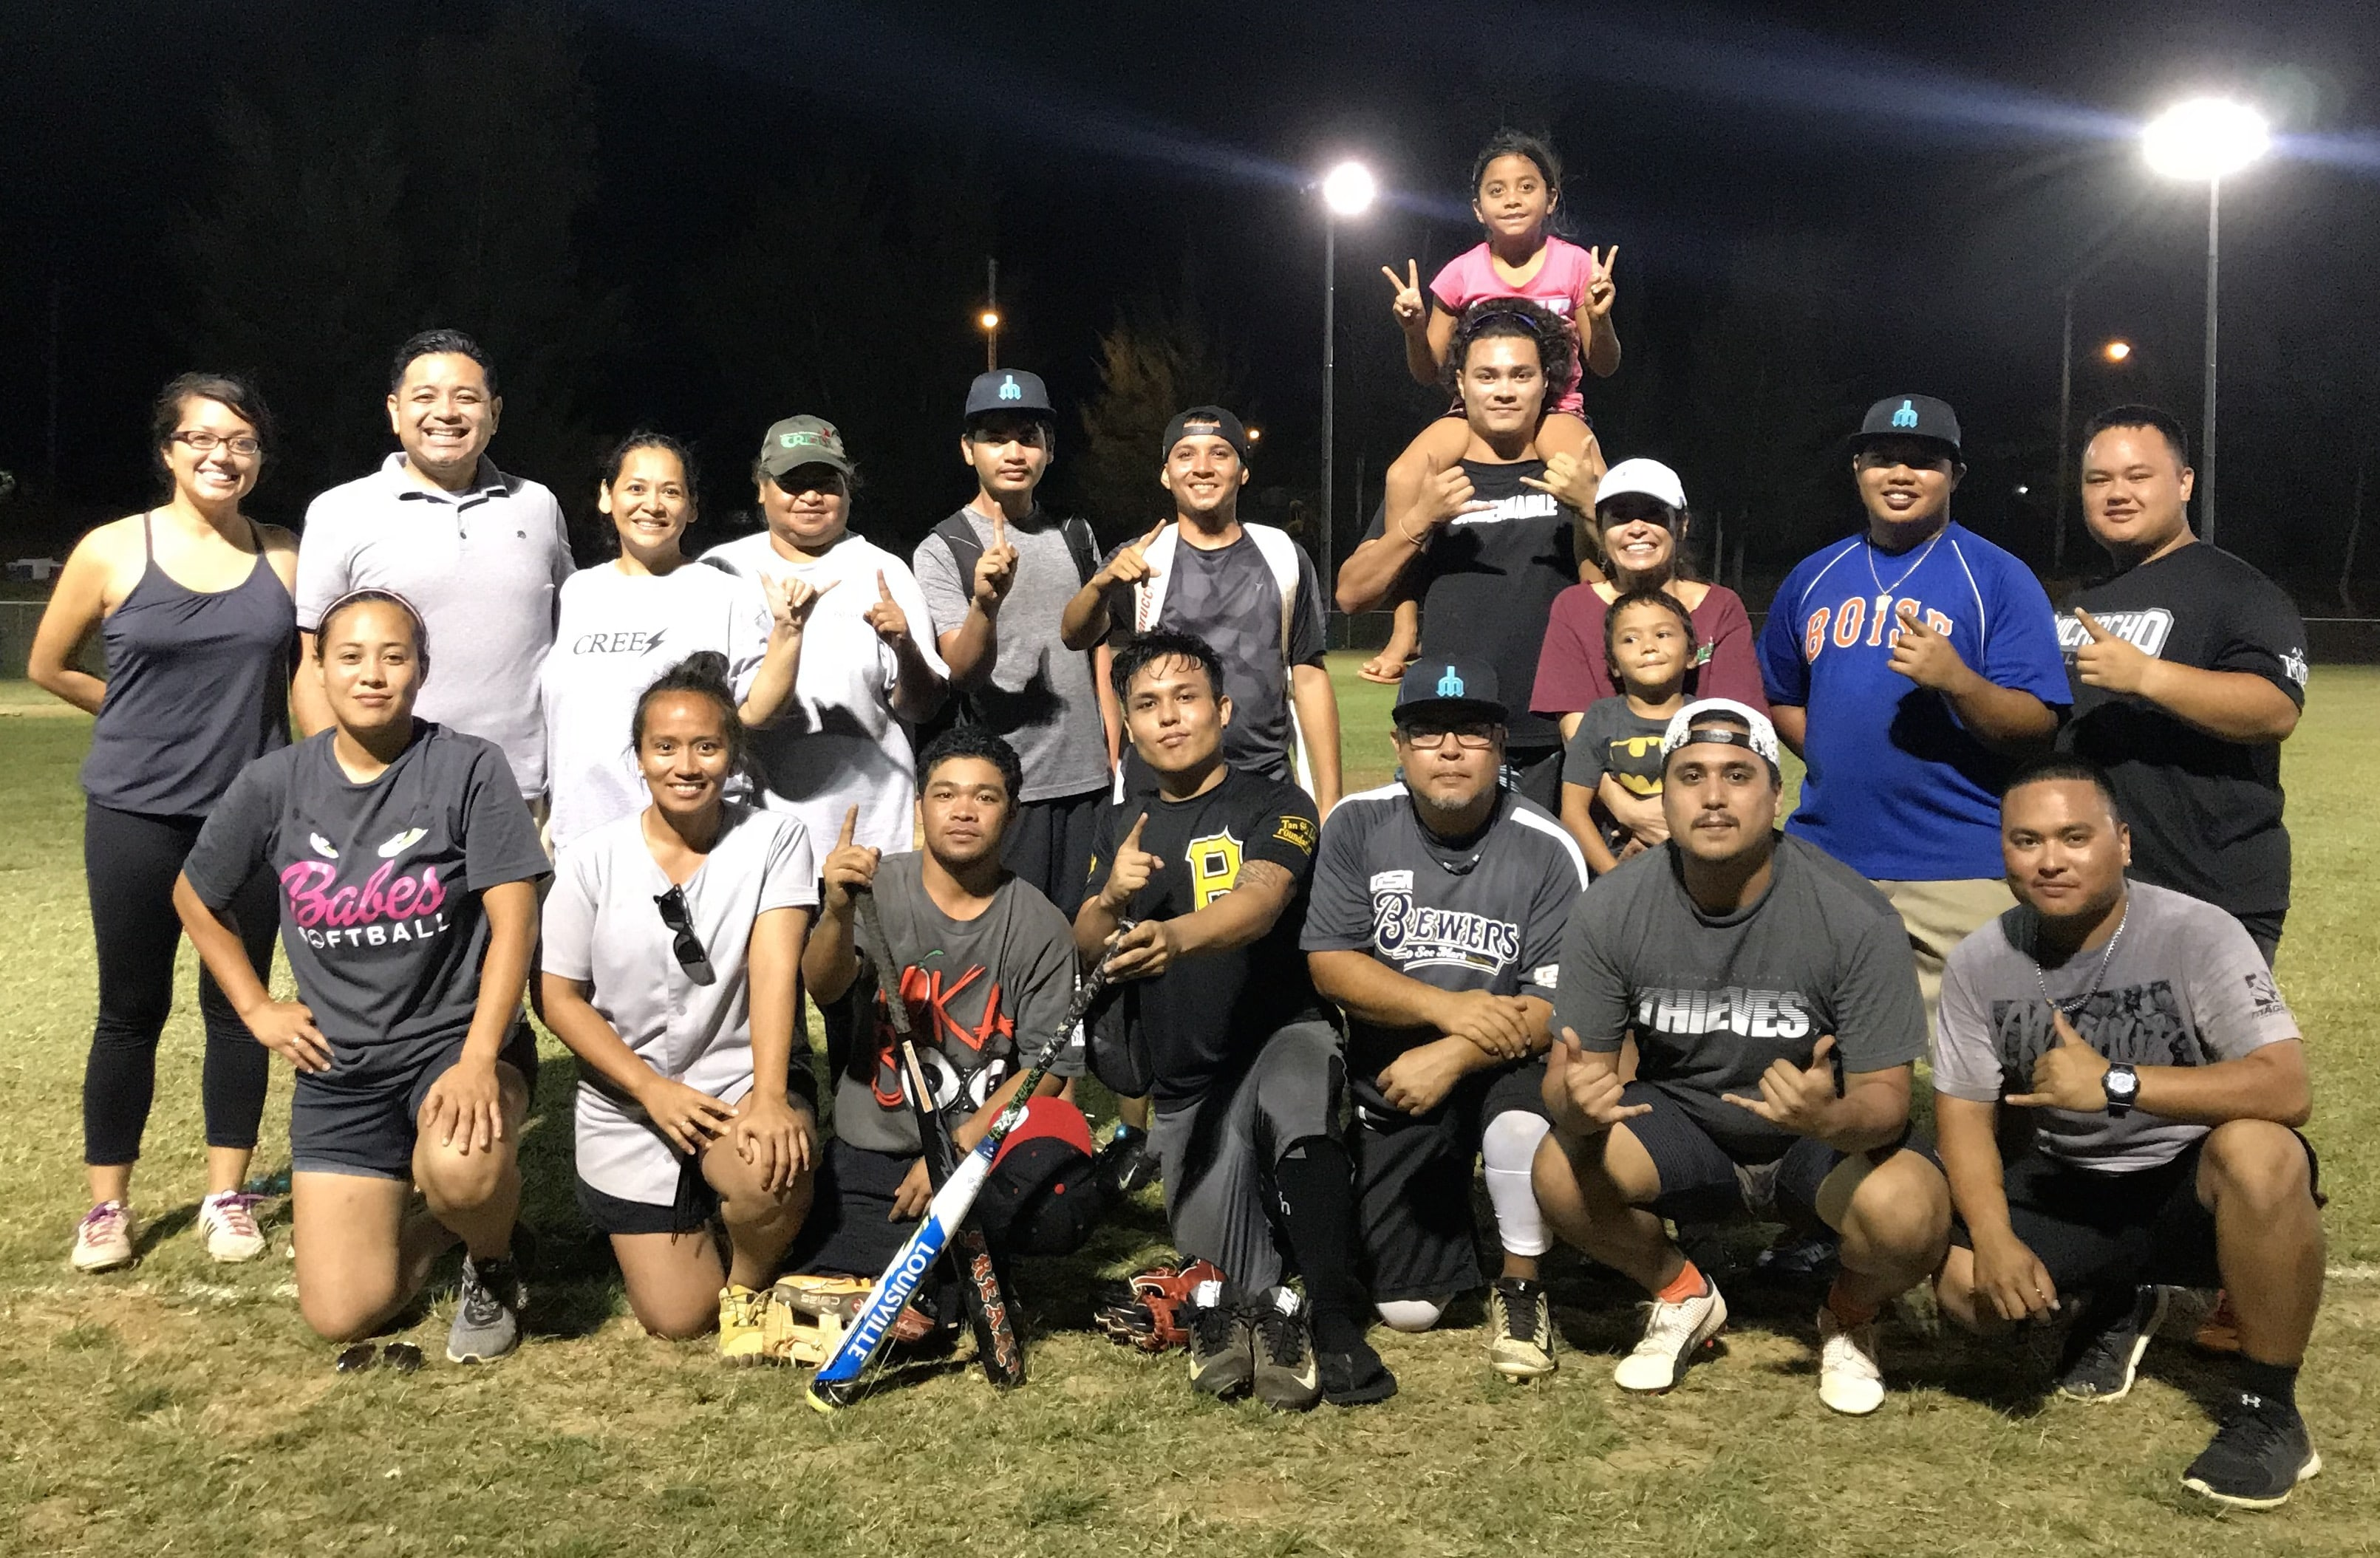 CREES Lightning: Northern Marianas College's Cooperative Research Education and Extension Services (CREES) recently won the 2018 NMC Softball Tournament held last weekend. The tournament, sponsored by the NMC Alumni Association, included teams from other departments at the College. The softball tournament was held in anticipation of NMC's Charter Day celebration, which will be held today, April 13, 2018 at NMC's South Field from 4:00pm to 10:00pm.